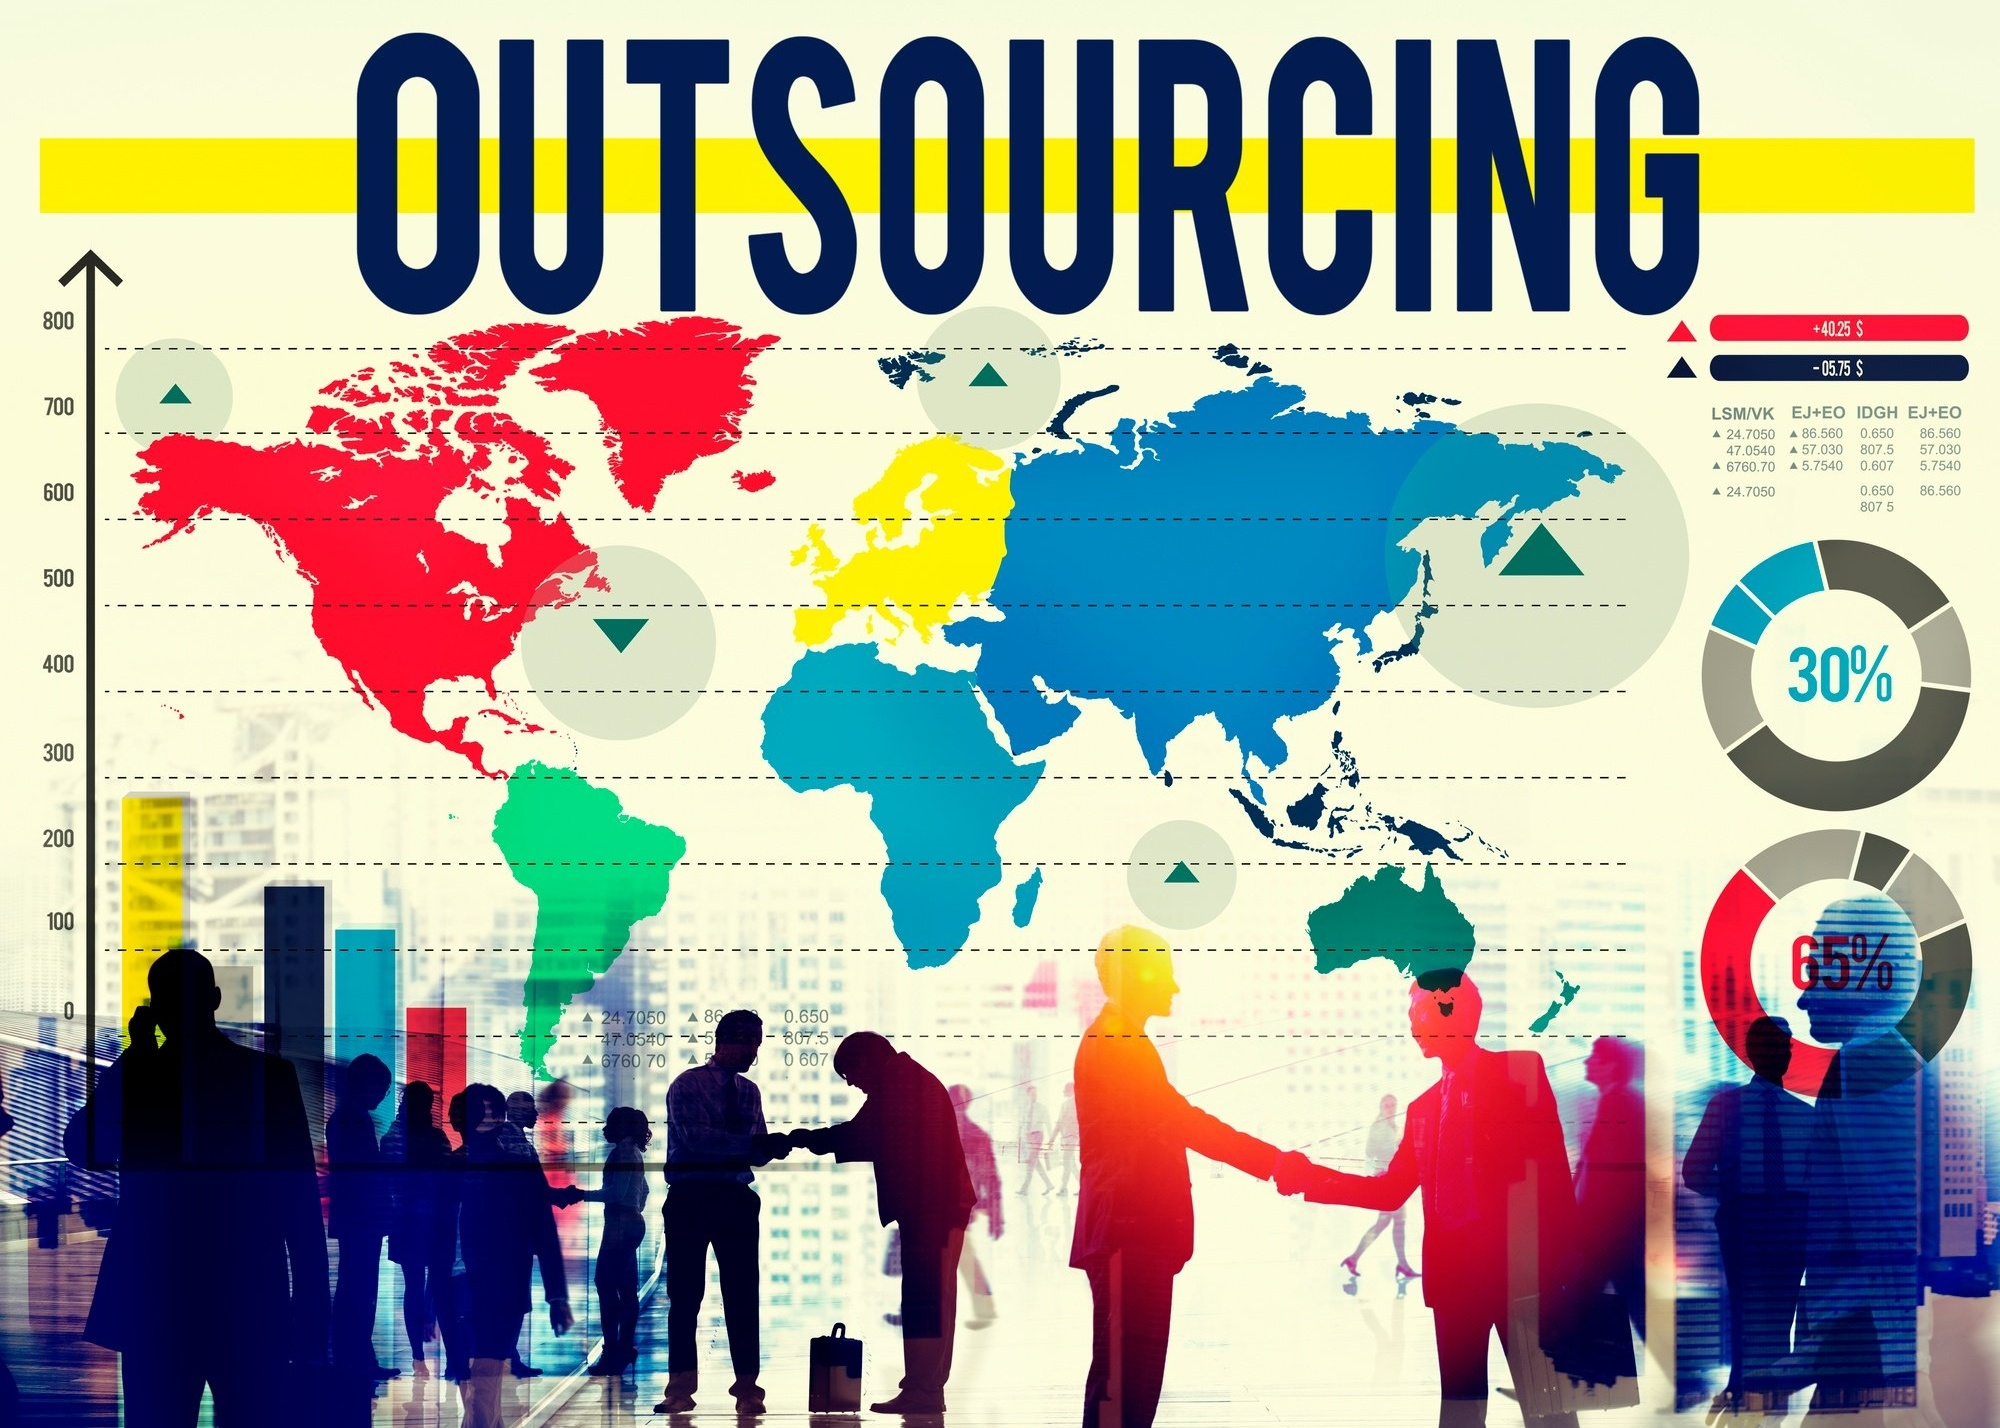 outsourcing risks and how to mitigate them-009321-edited